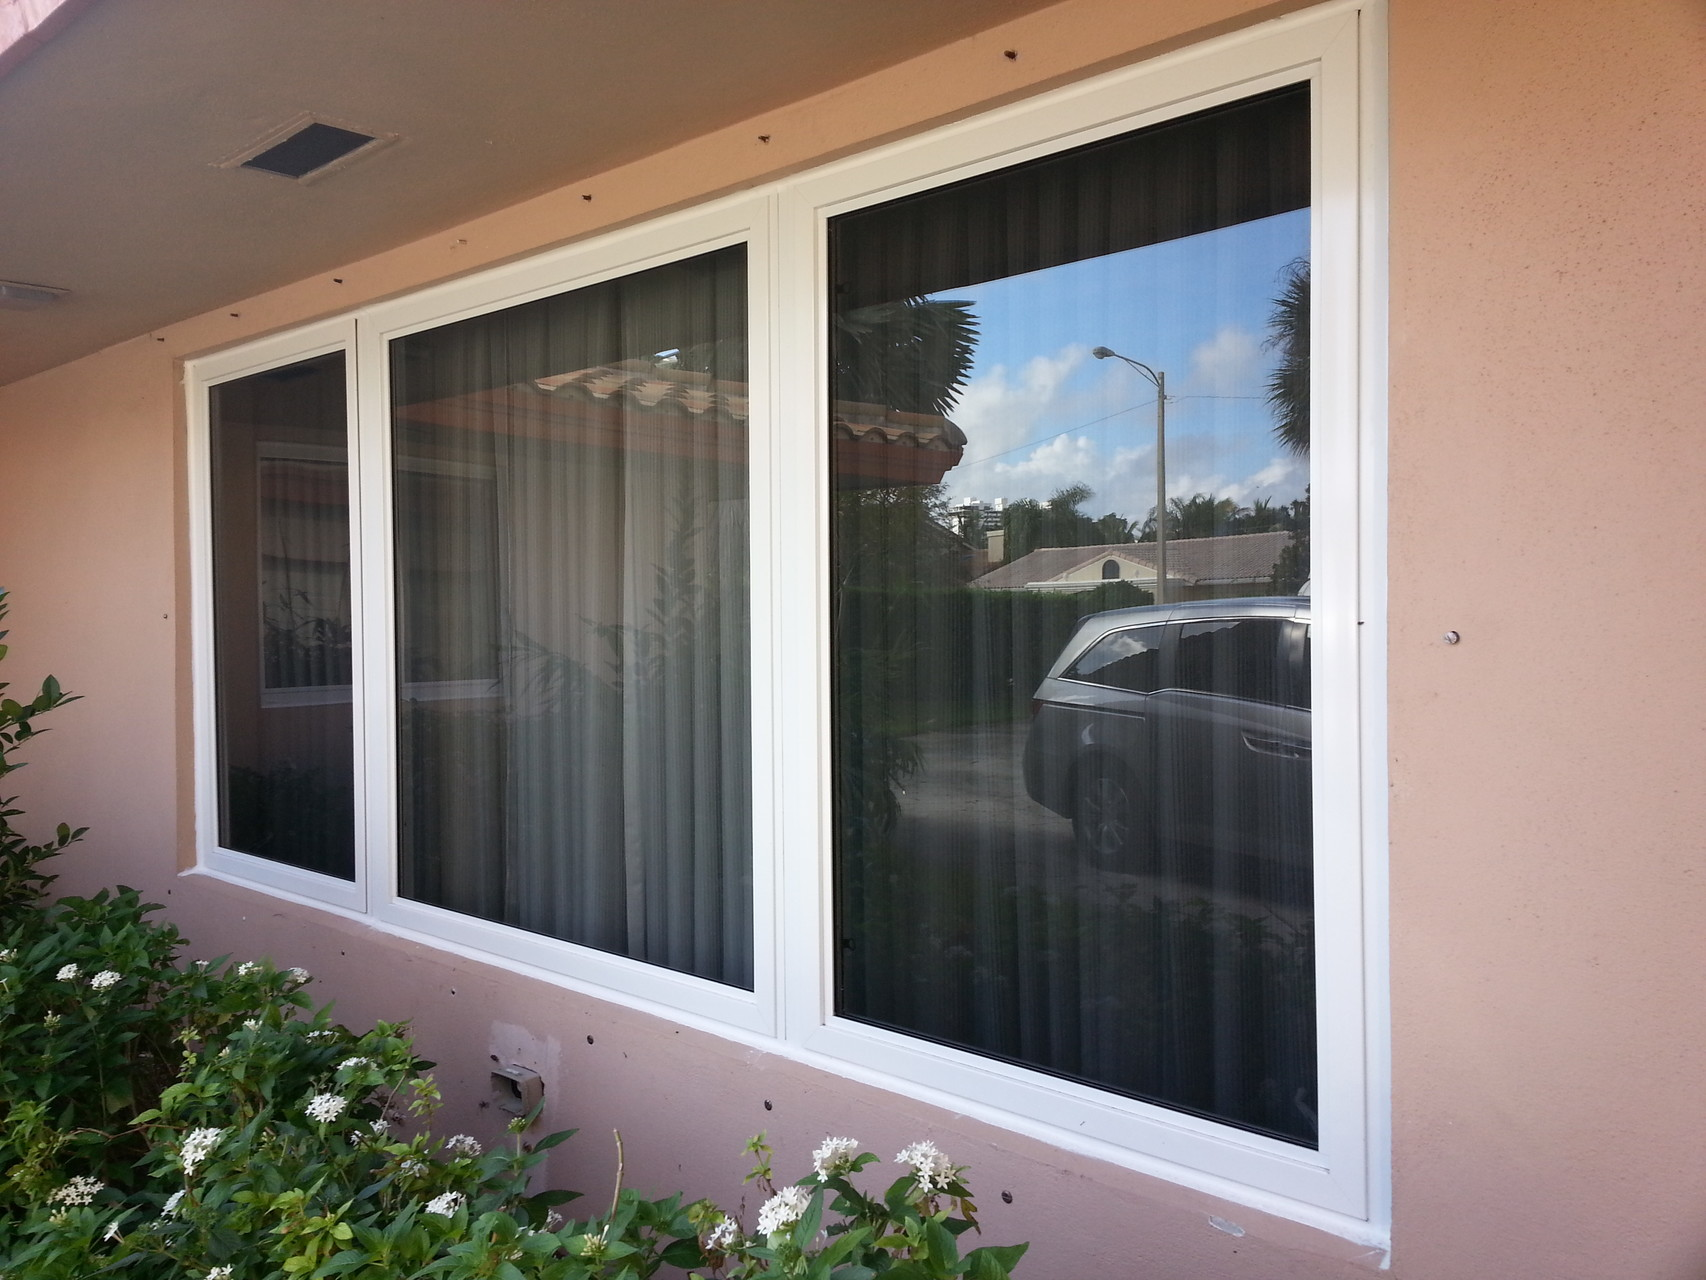 Florida used oil collection and disposal wasteoil florida for Recycled windows and doors